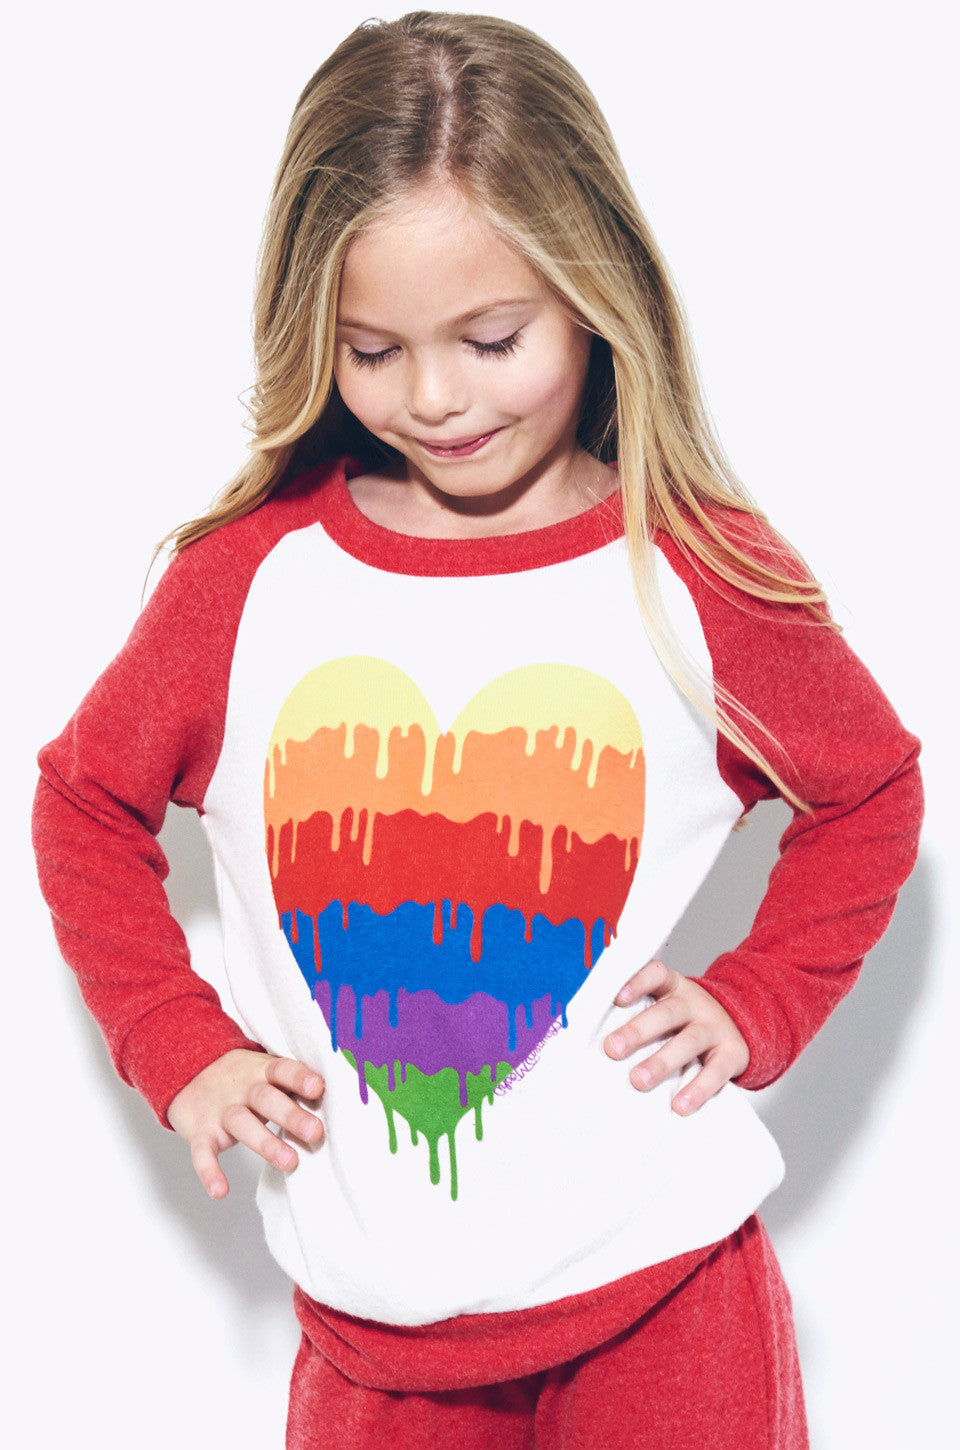 lauren moshi high quality designer women s clothing kids art heckle dripping heart colorblock pullover